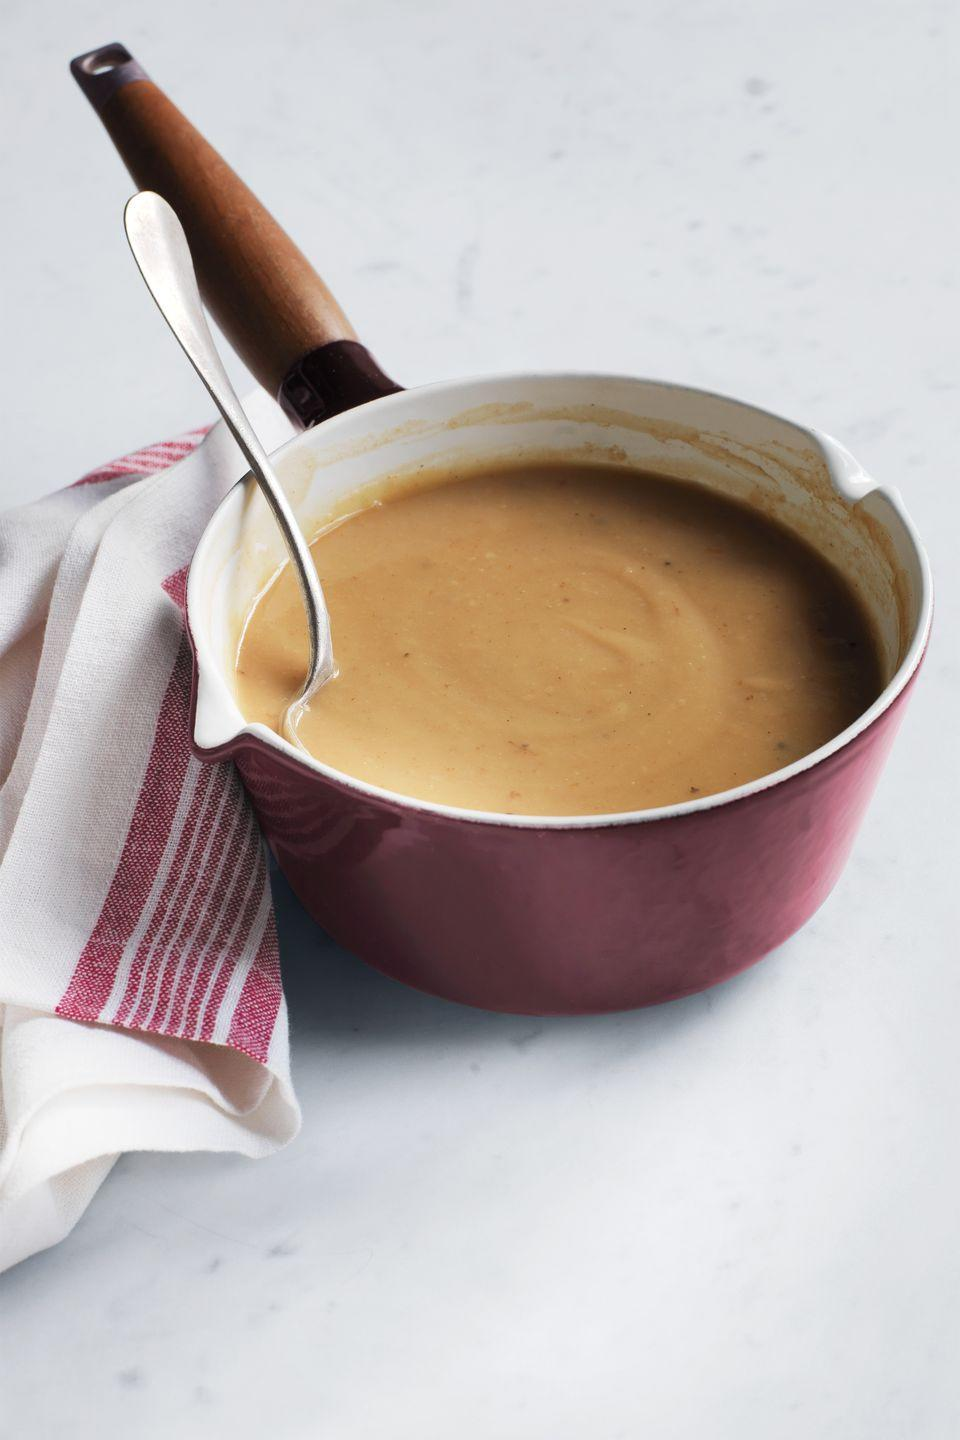 """<p>This star-worthy gravy is made by simmering turkey wing drippings with chicken broth, chopped carrot and onions, and dried thyme. Serve half the batch with dinner and save the rest — it can be stored in the freezer for up to one month.</p><p><a href=""""https://www.womansday.com/food-recipes/food-drinks/recipes/a10860/make-ahead-turkey-gravy-recipe-122223/"""" rel=""""nofollow noopener"""" target=""""_blank"""" data-ylk=""""slk:Get the Make-Ahead Turkey Gravy recipe."""" class=""""link rapid-noclick-resp""""><em><strong>Get the Make-Ahead Turkey Gravy recipe.</strong></em></a></p>"""